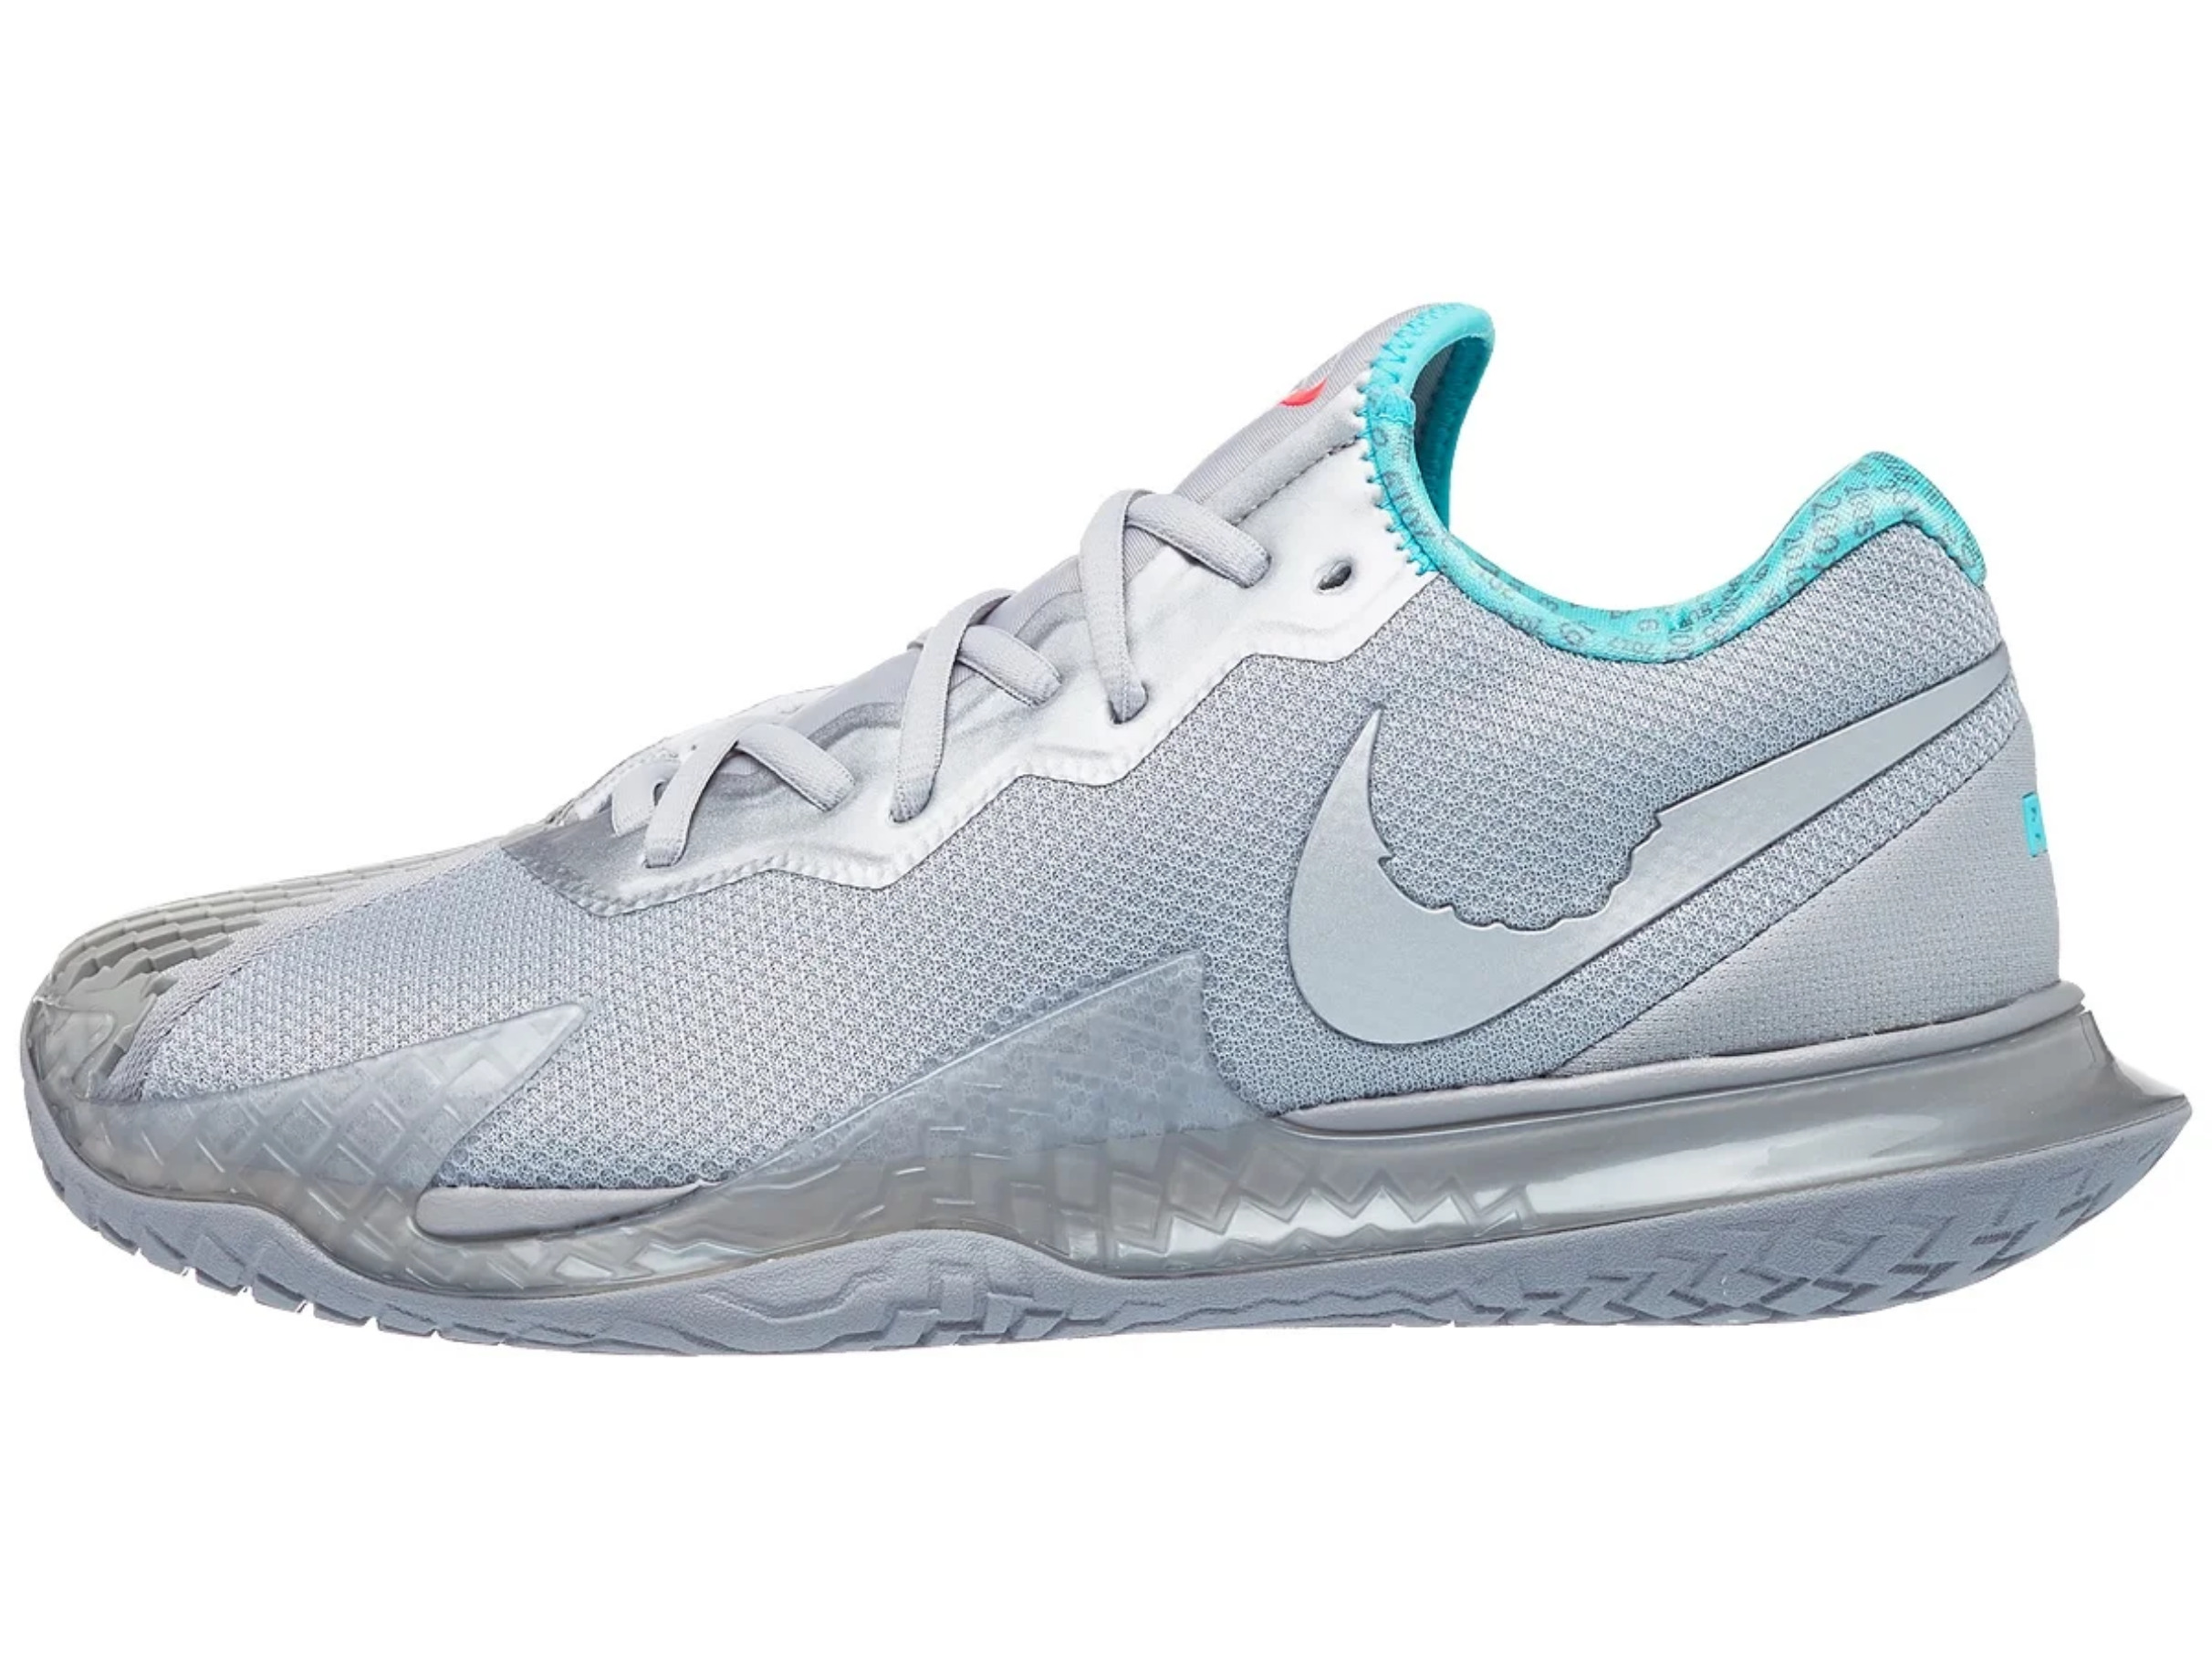 Nike Air Zoom Vapor Cage 4 Men's Shoe - Silver